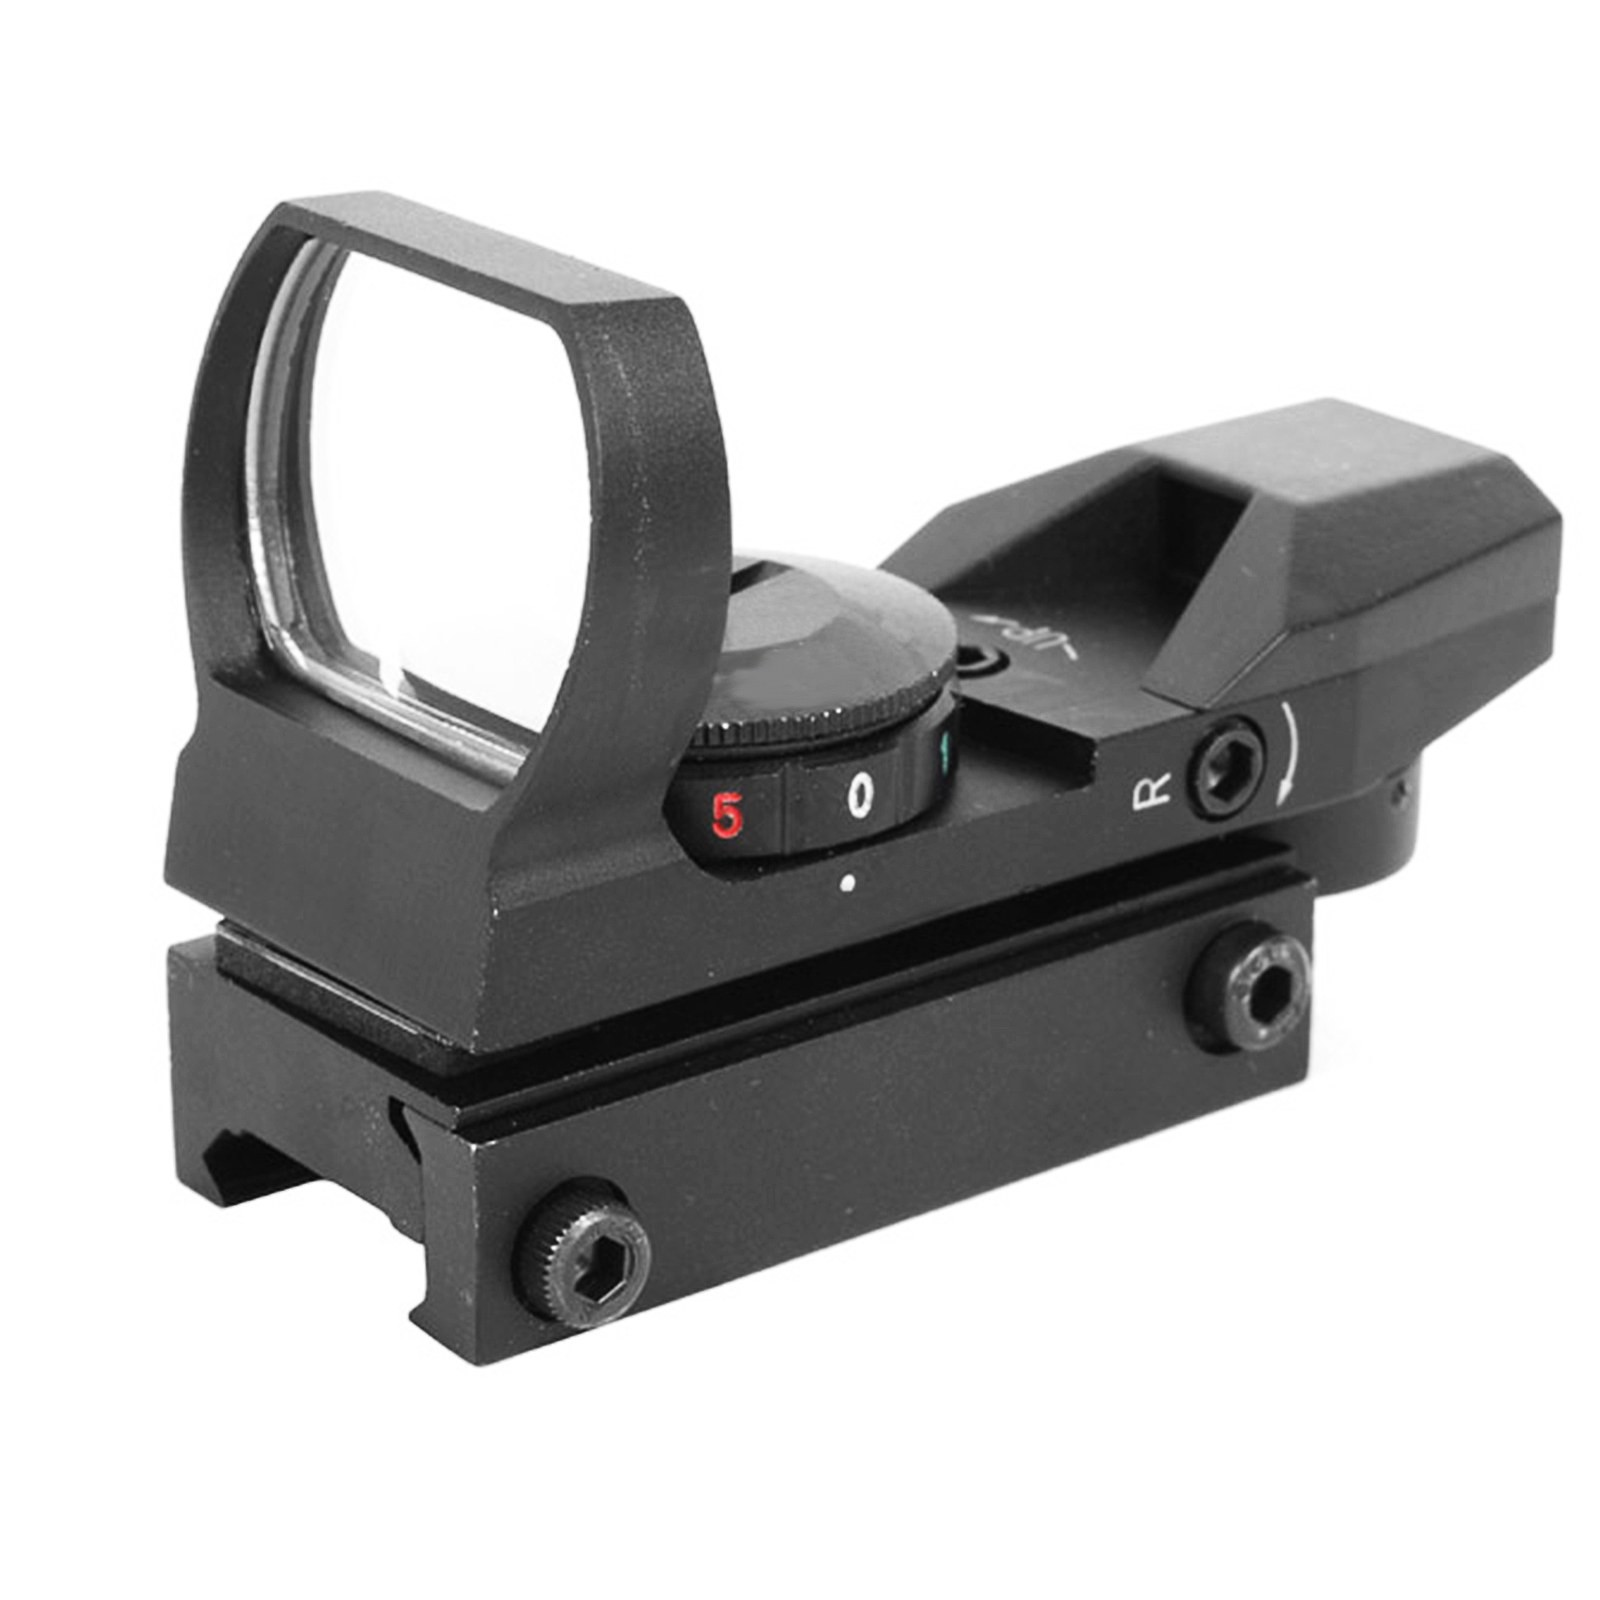 Ottica Mirino Punto rosso Red Green Dot Sight per Softair Olografico Js-Tactical